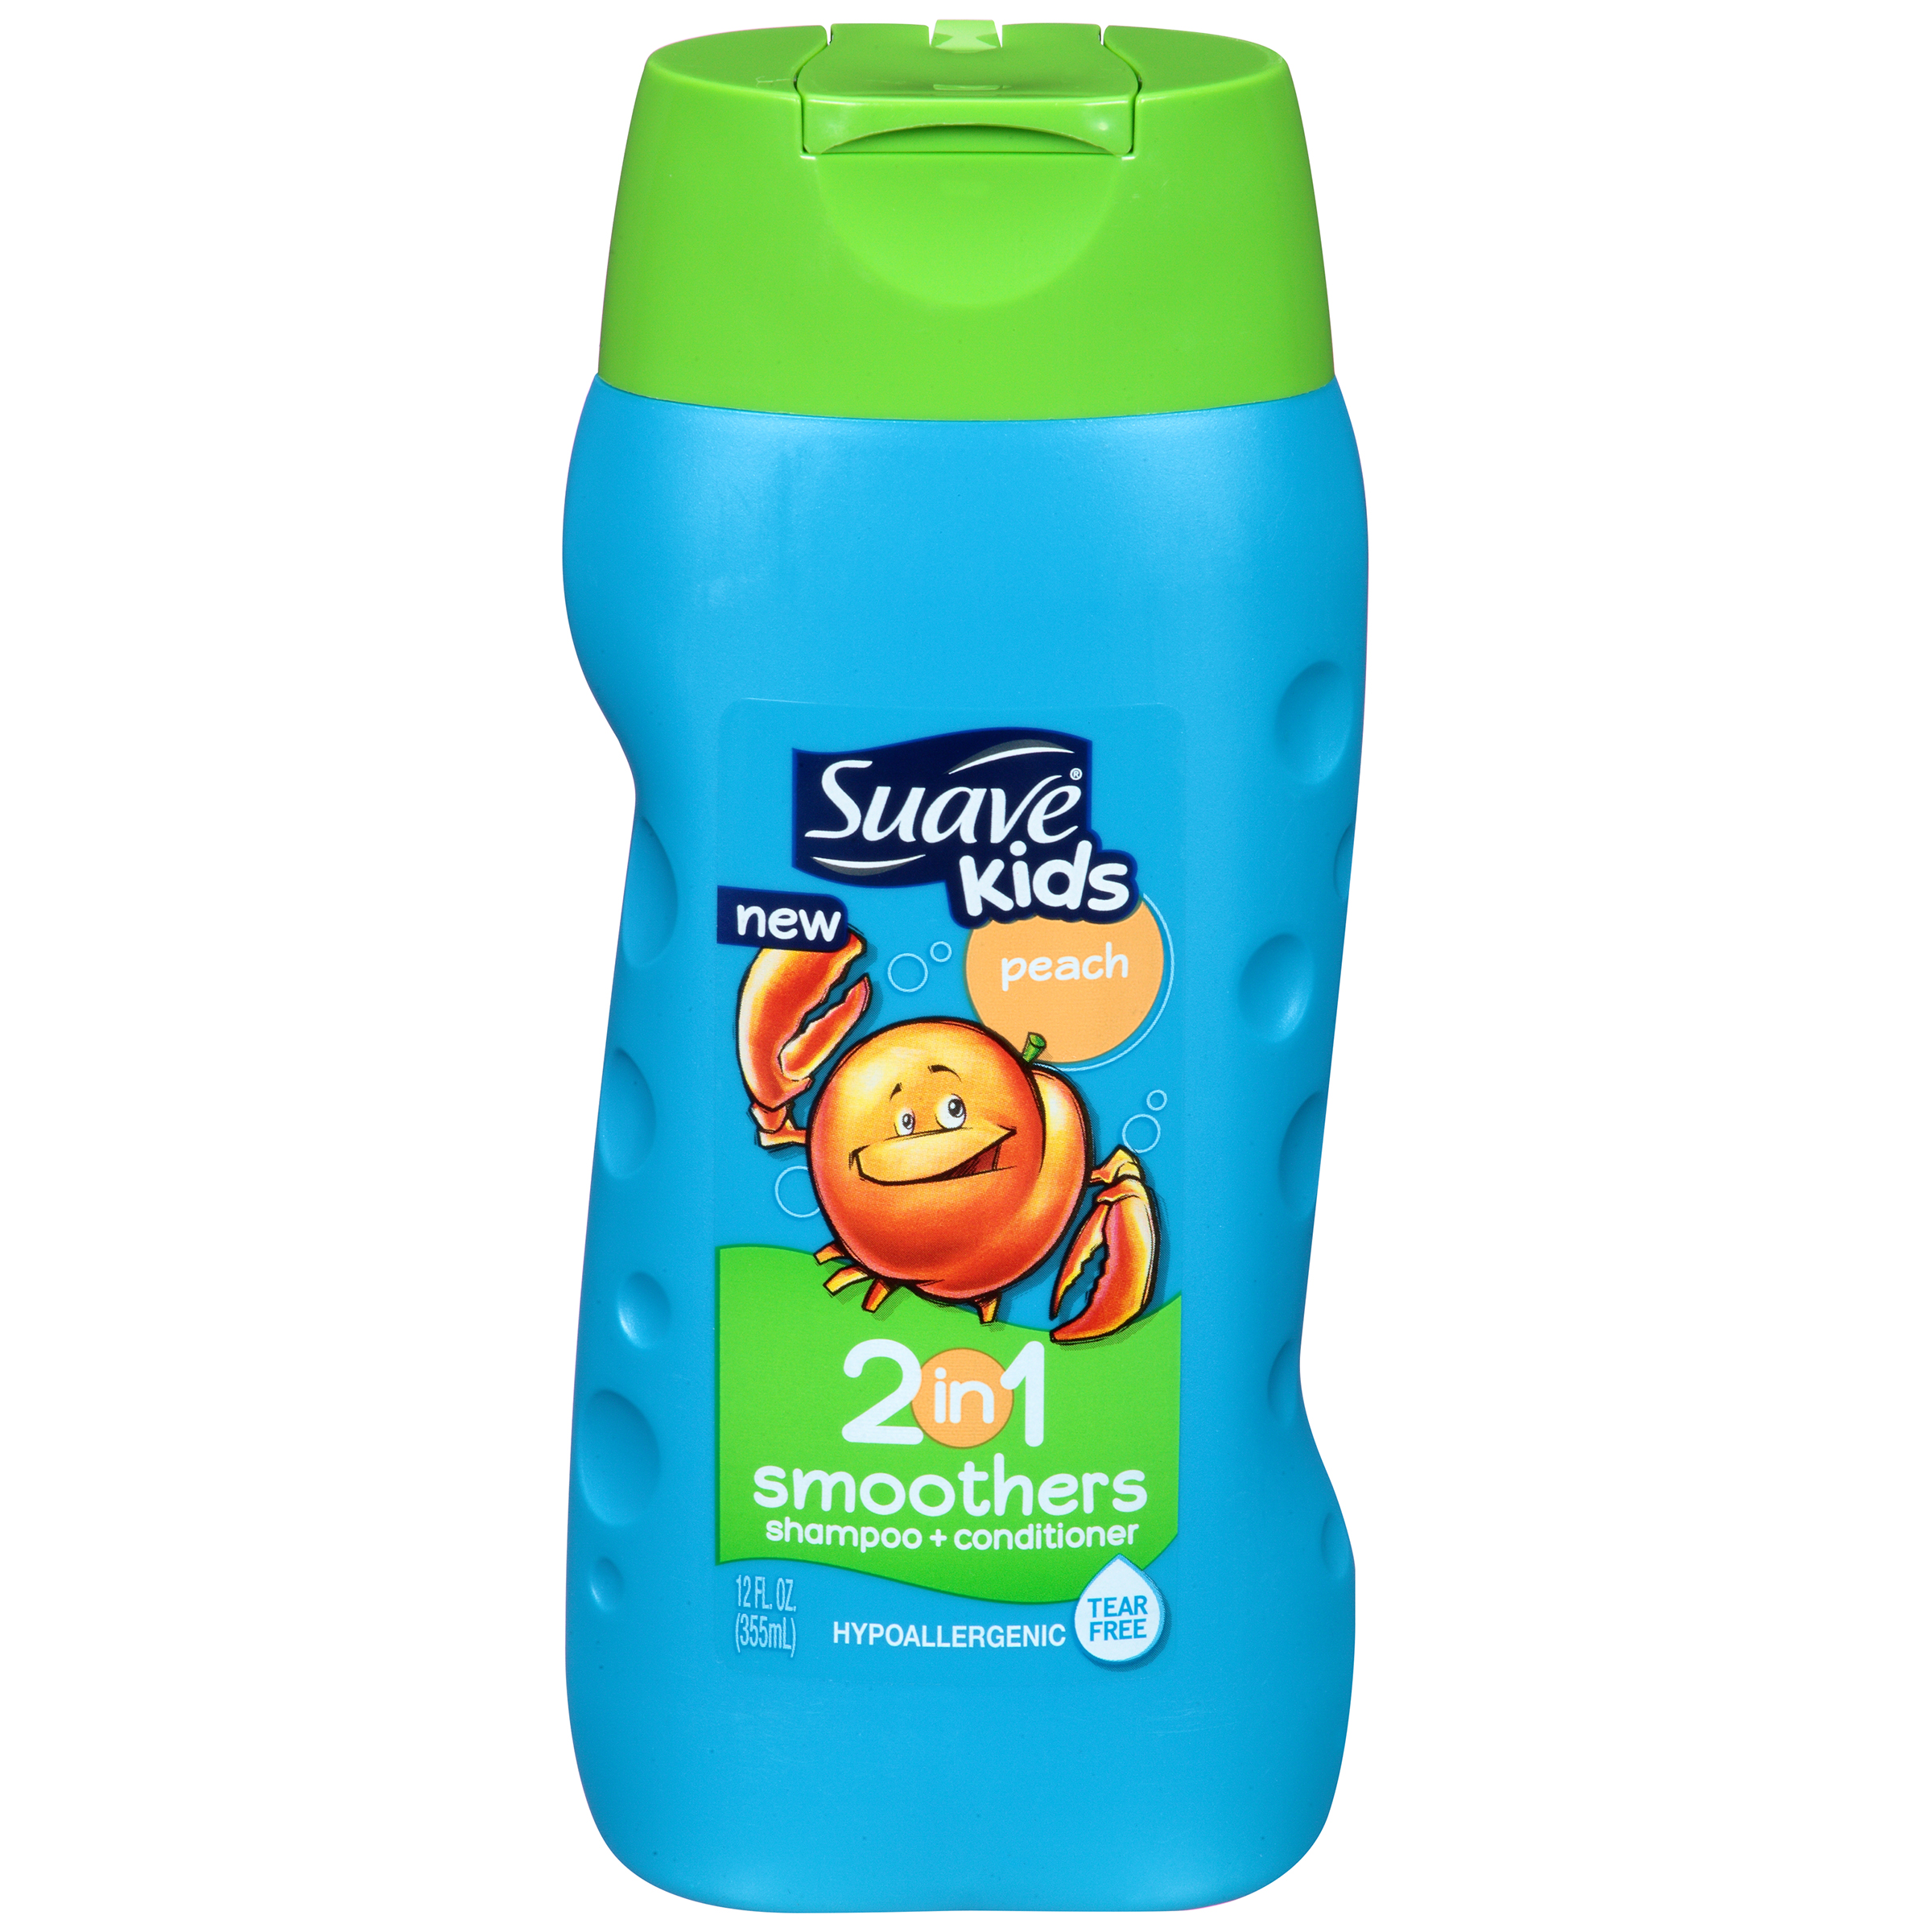 Suave Kids 2 in 1 Peach Shampoo + Conditioner 12 FL OZ PLASTIC BOTTLE PartNumber: 038W006913636001P KsnValue: 6913636 MfgPartNumber: 684011